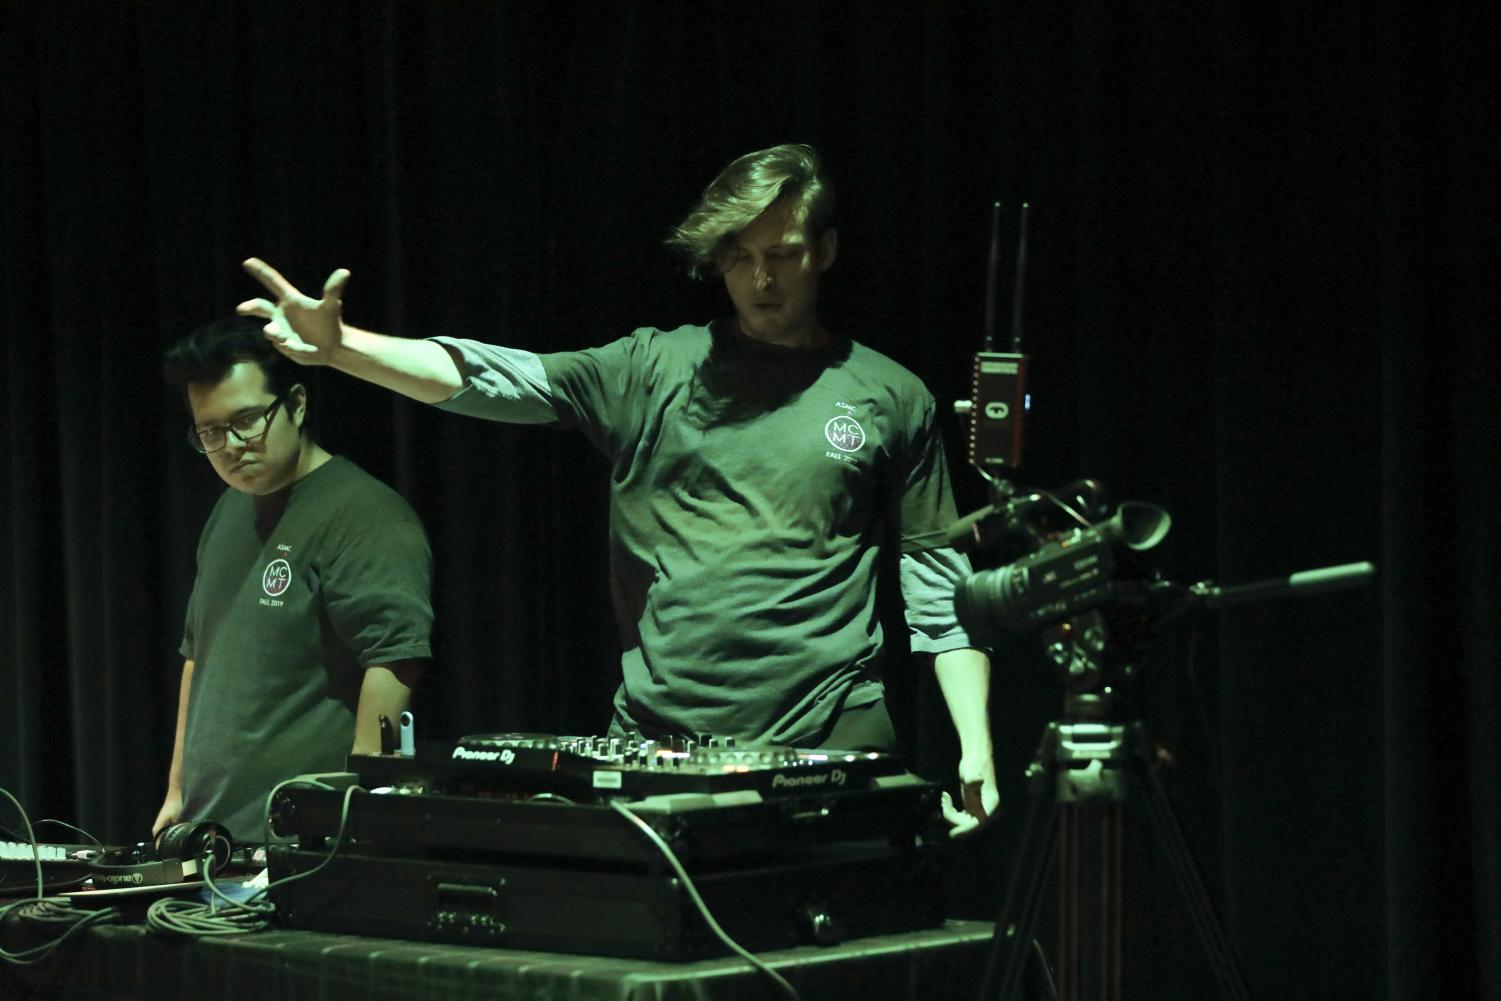 Lysander Hernandez (left) watches as Preston Teel (right) reaches out to the crowd during his performance at the Student DJ Showcase on Friday, Oct. 25, at Moorpark College. Photo credit: Ryan Bough